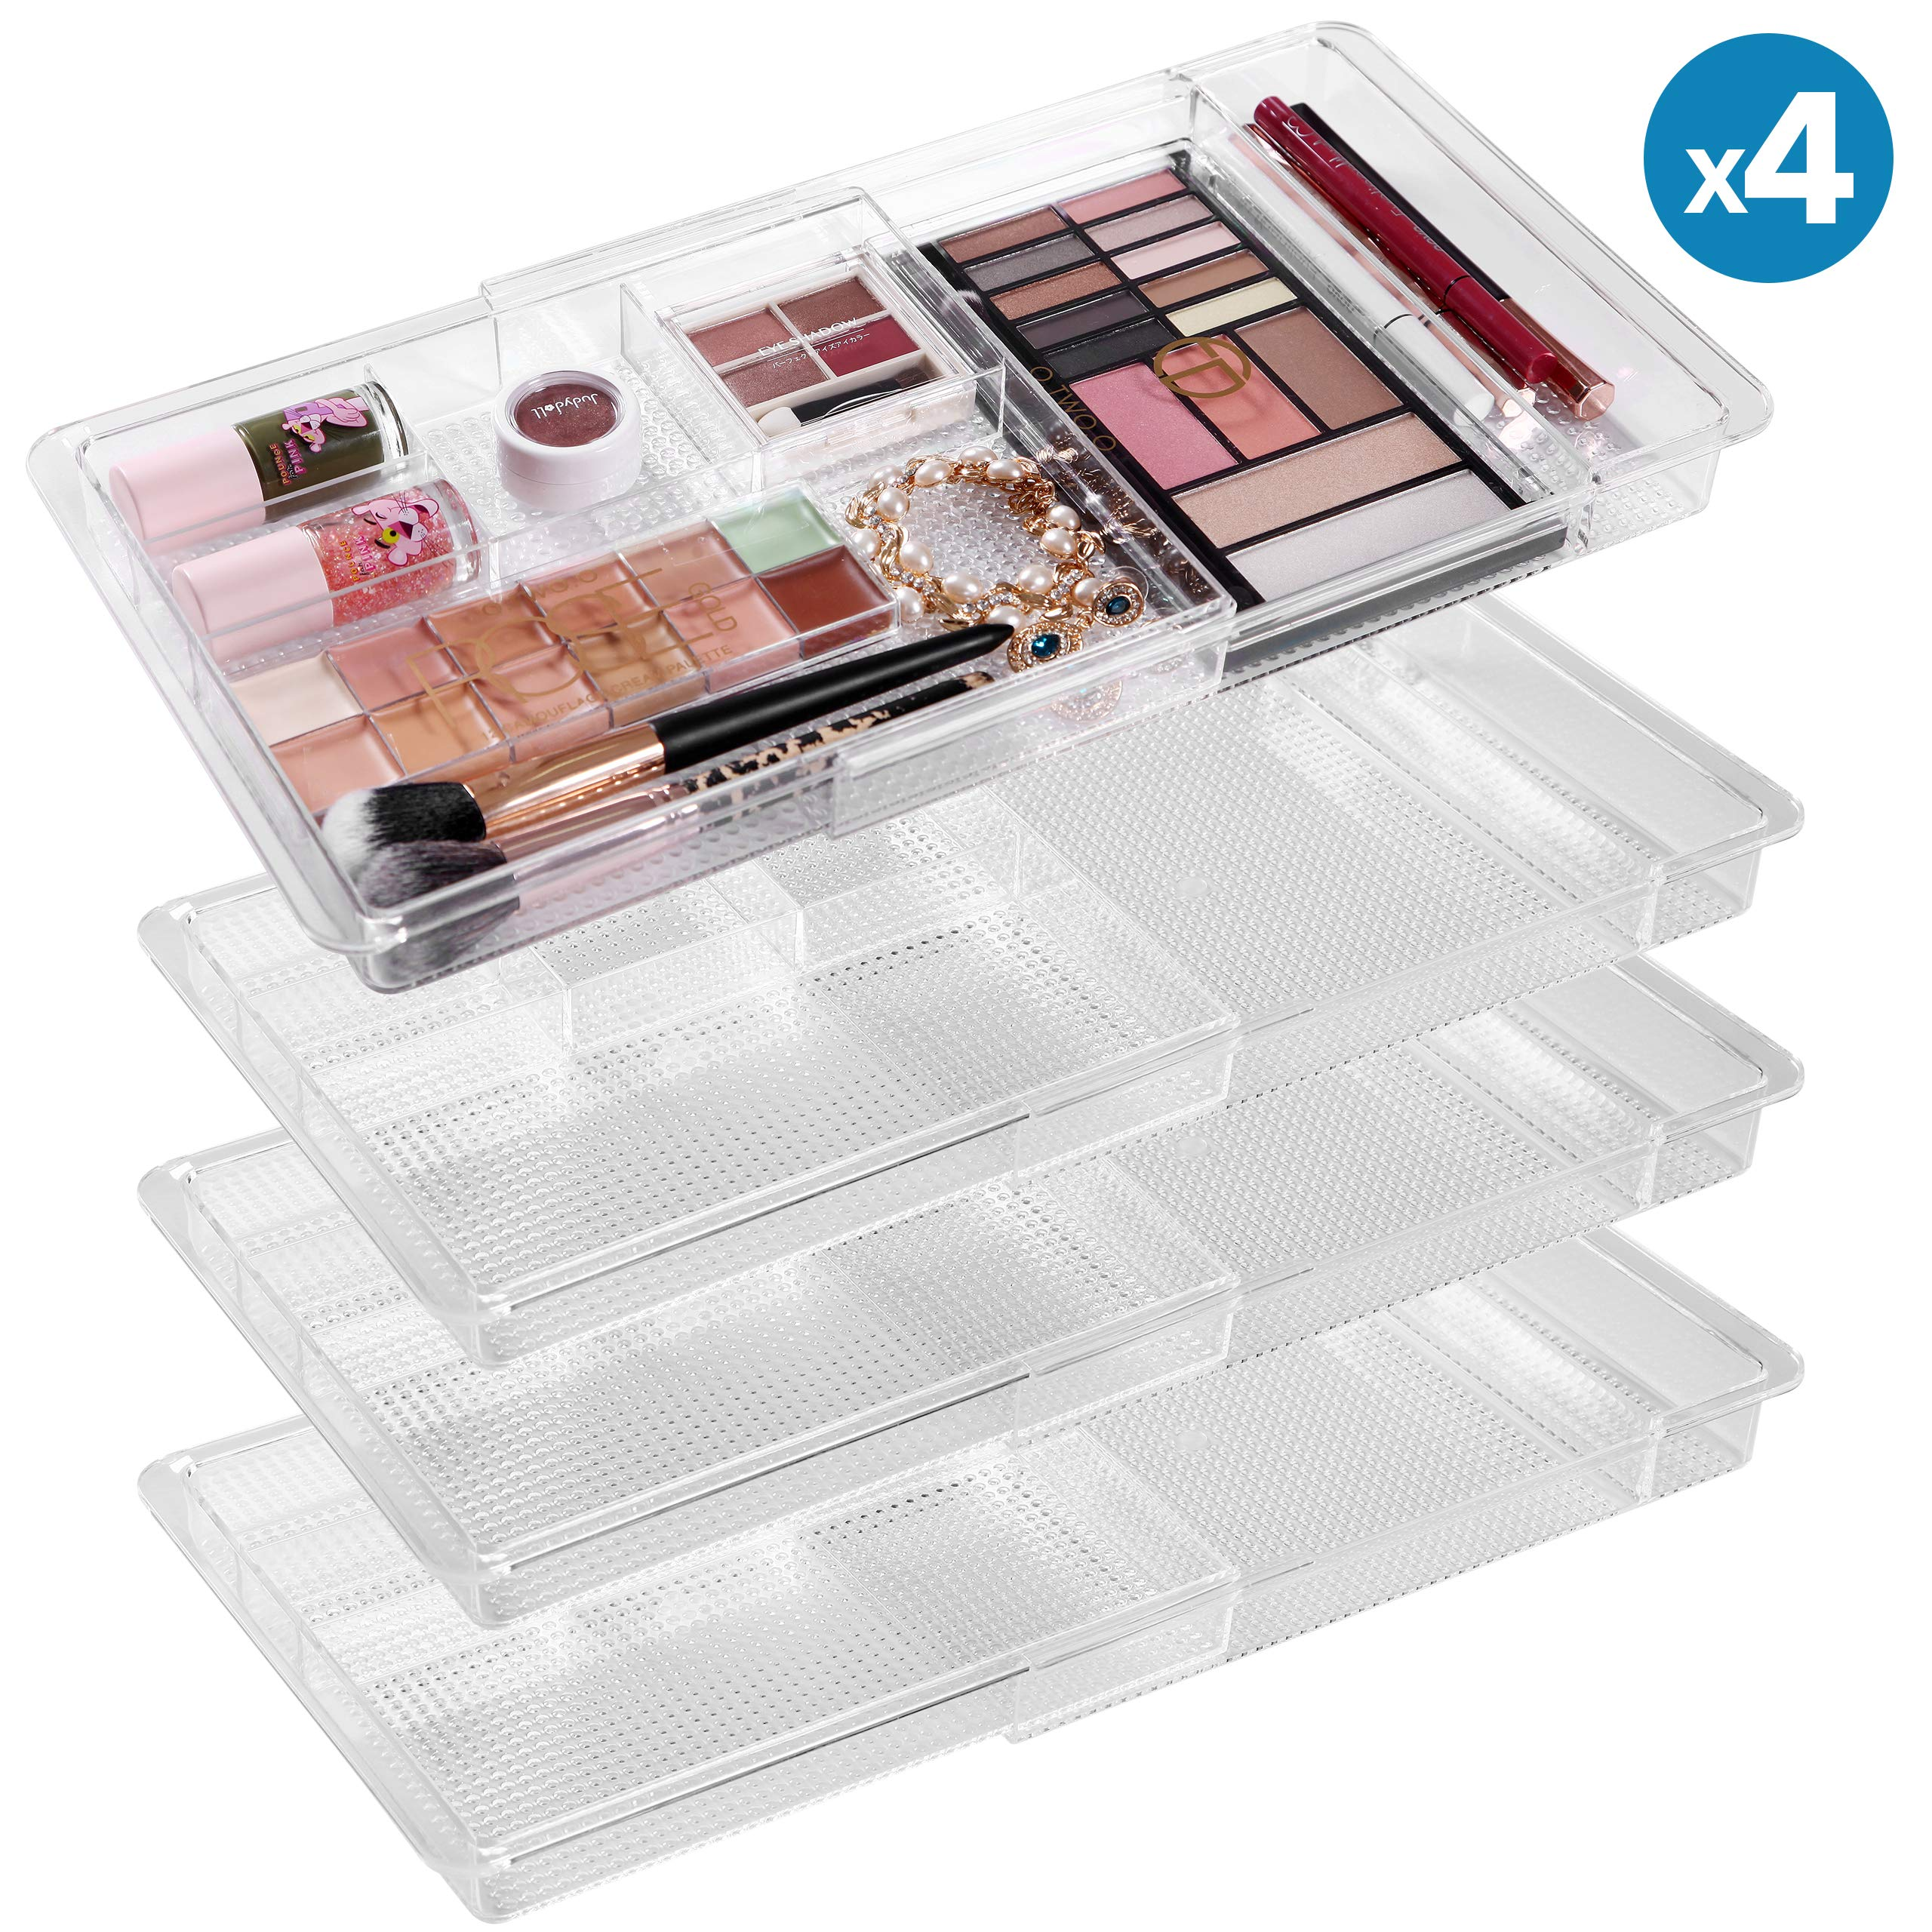 MoMA Expandable Makeup Organizer - 11''x 7.7''x 1.2''Adjustable Makeup Brush Organizer (4 Packs) - Clear Plastic Makeup Organizer for Bathroom Drawers, Vanities, Countertops - Scalable Cosmetics Organize